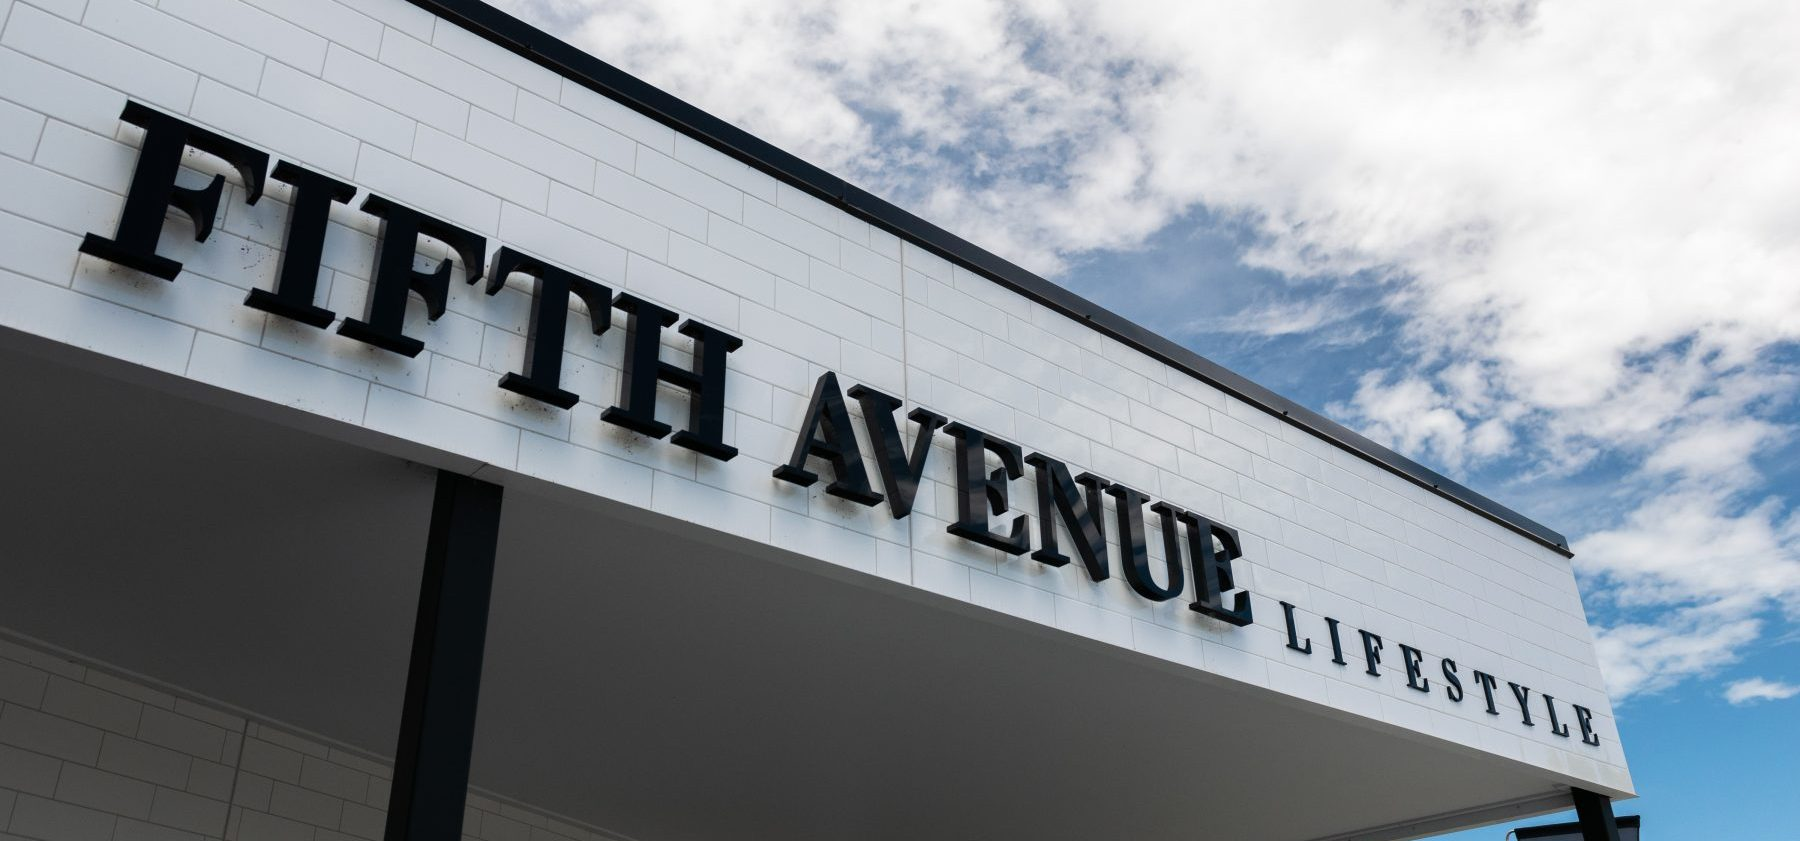 Fifth Avenue Lifestyle Exterior Sign